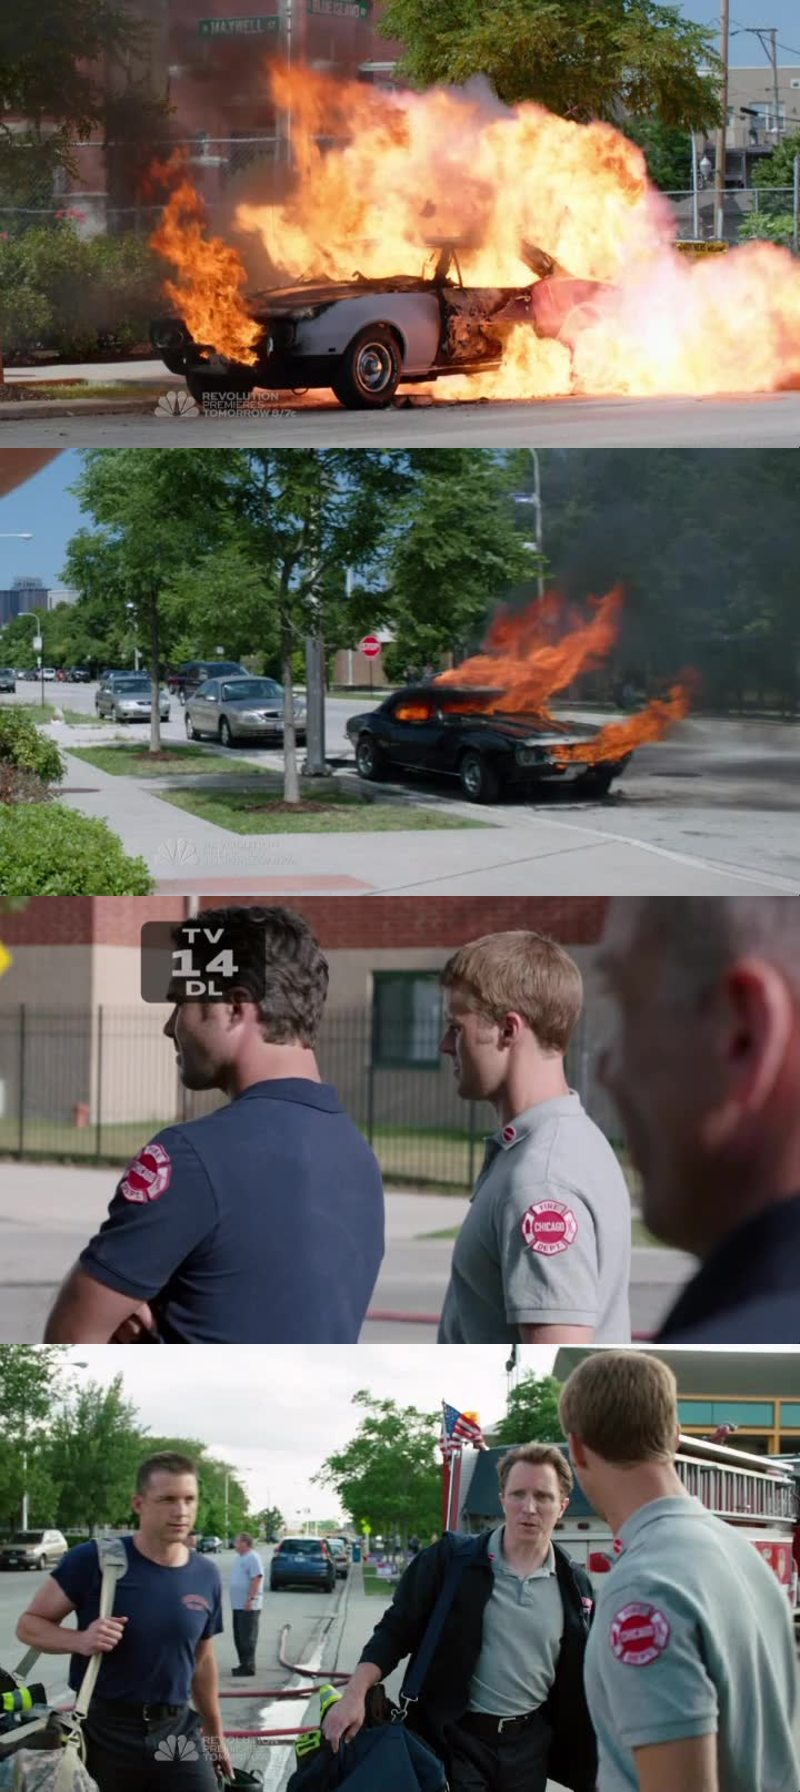 RIP Severide's Camaro. I have the feeling that is either that girl that almost pressed charges against Kelly on the first season or one of the new firefighters, because one of them are always finding those devices, can't remember the name.